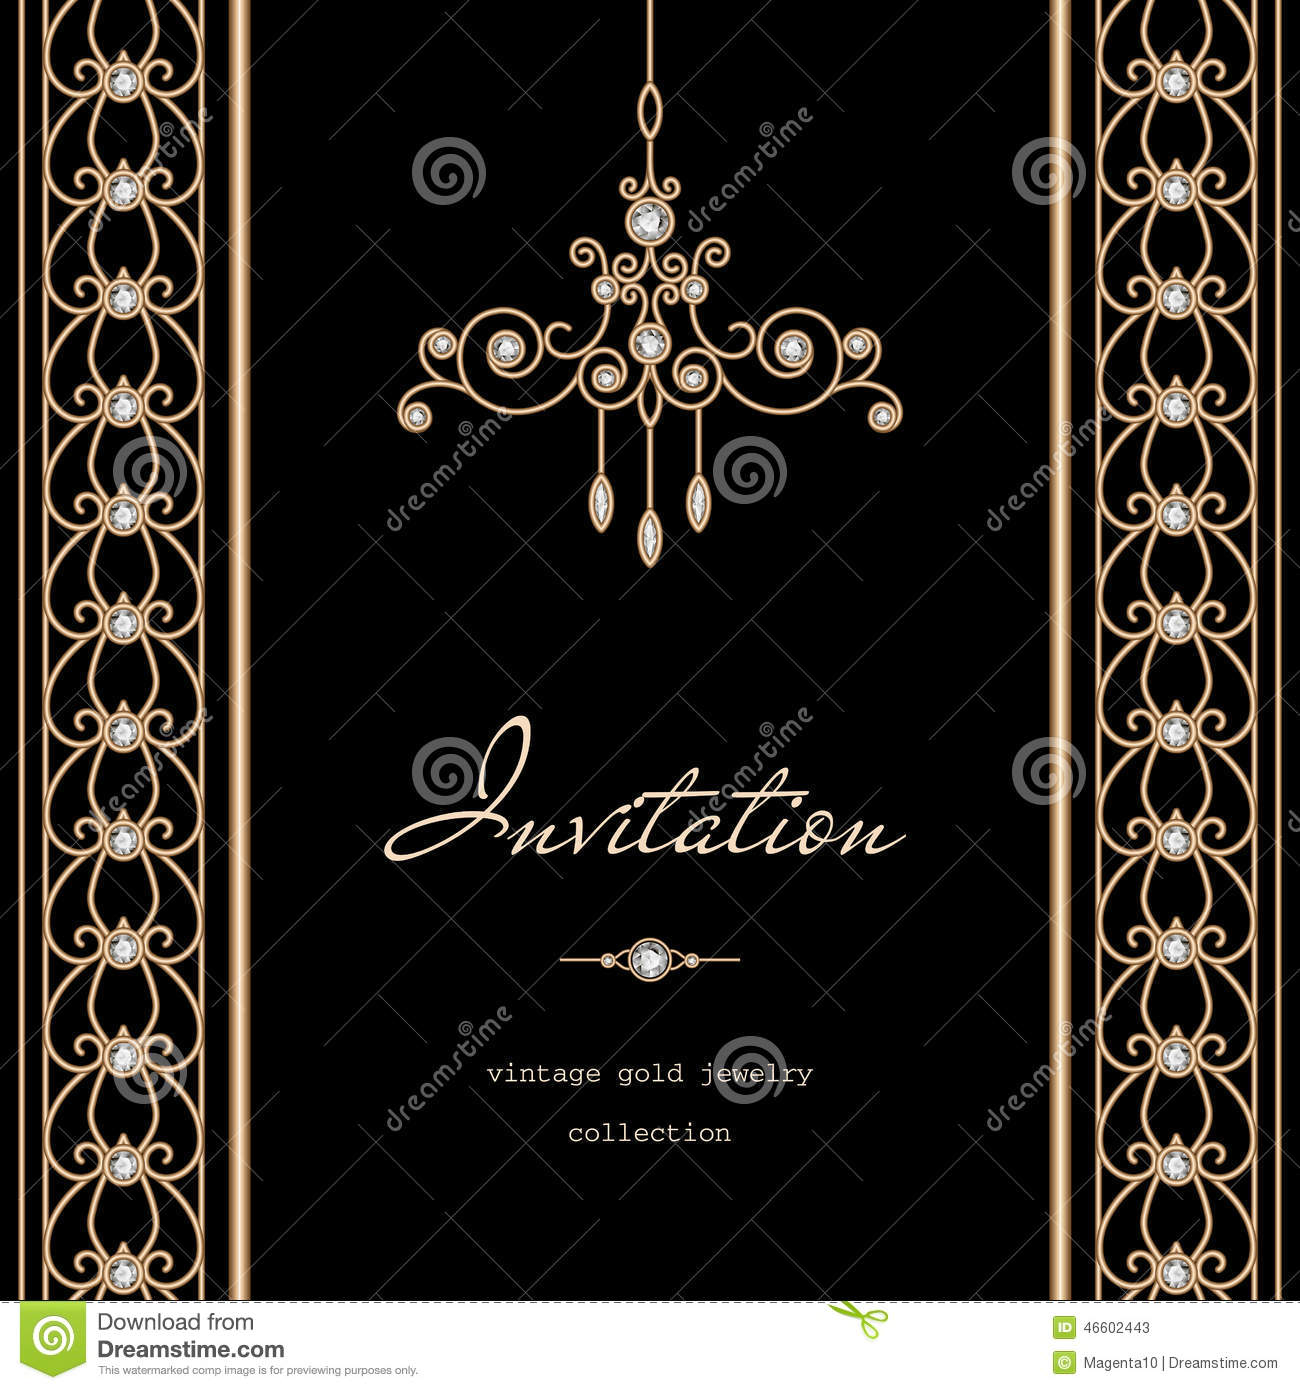 gold invitation template stock vector illustration of decor 46602443